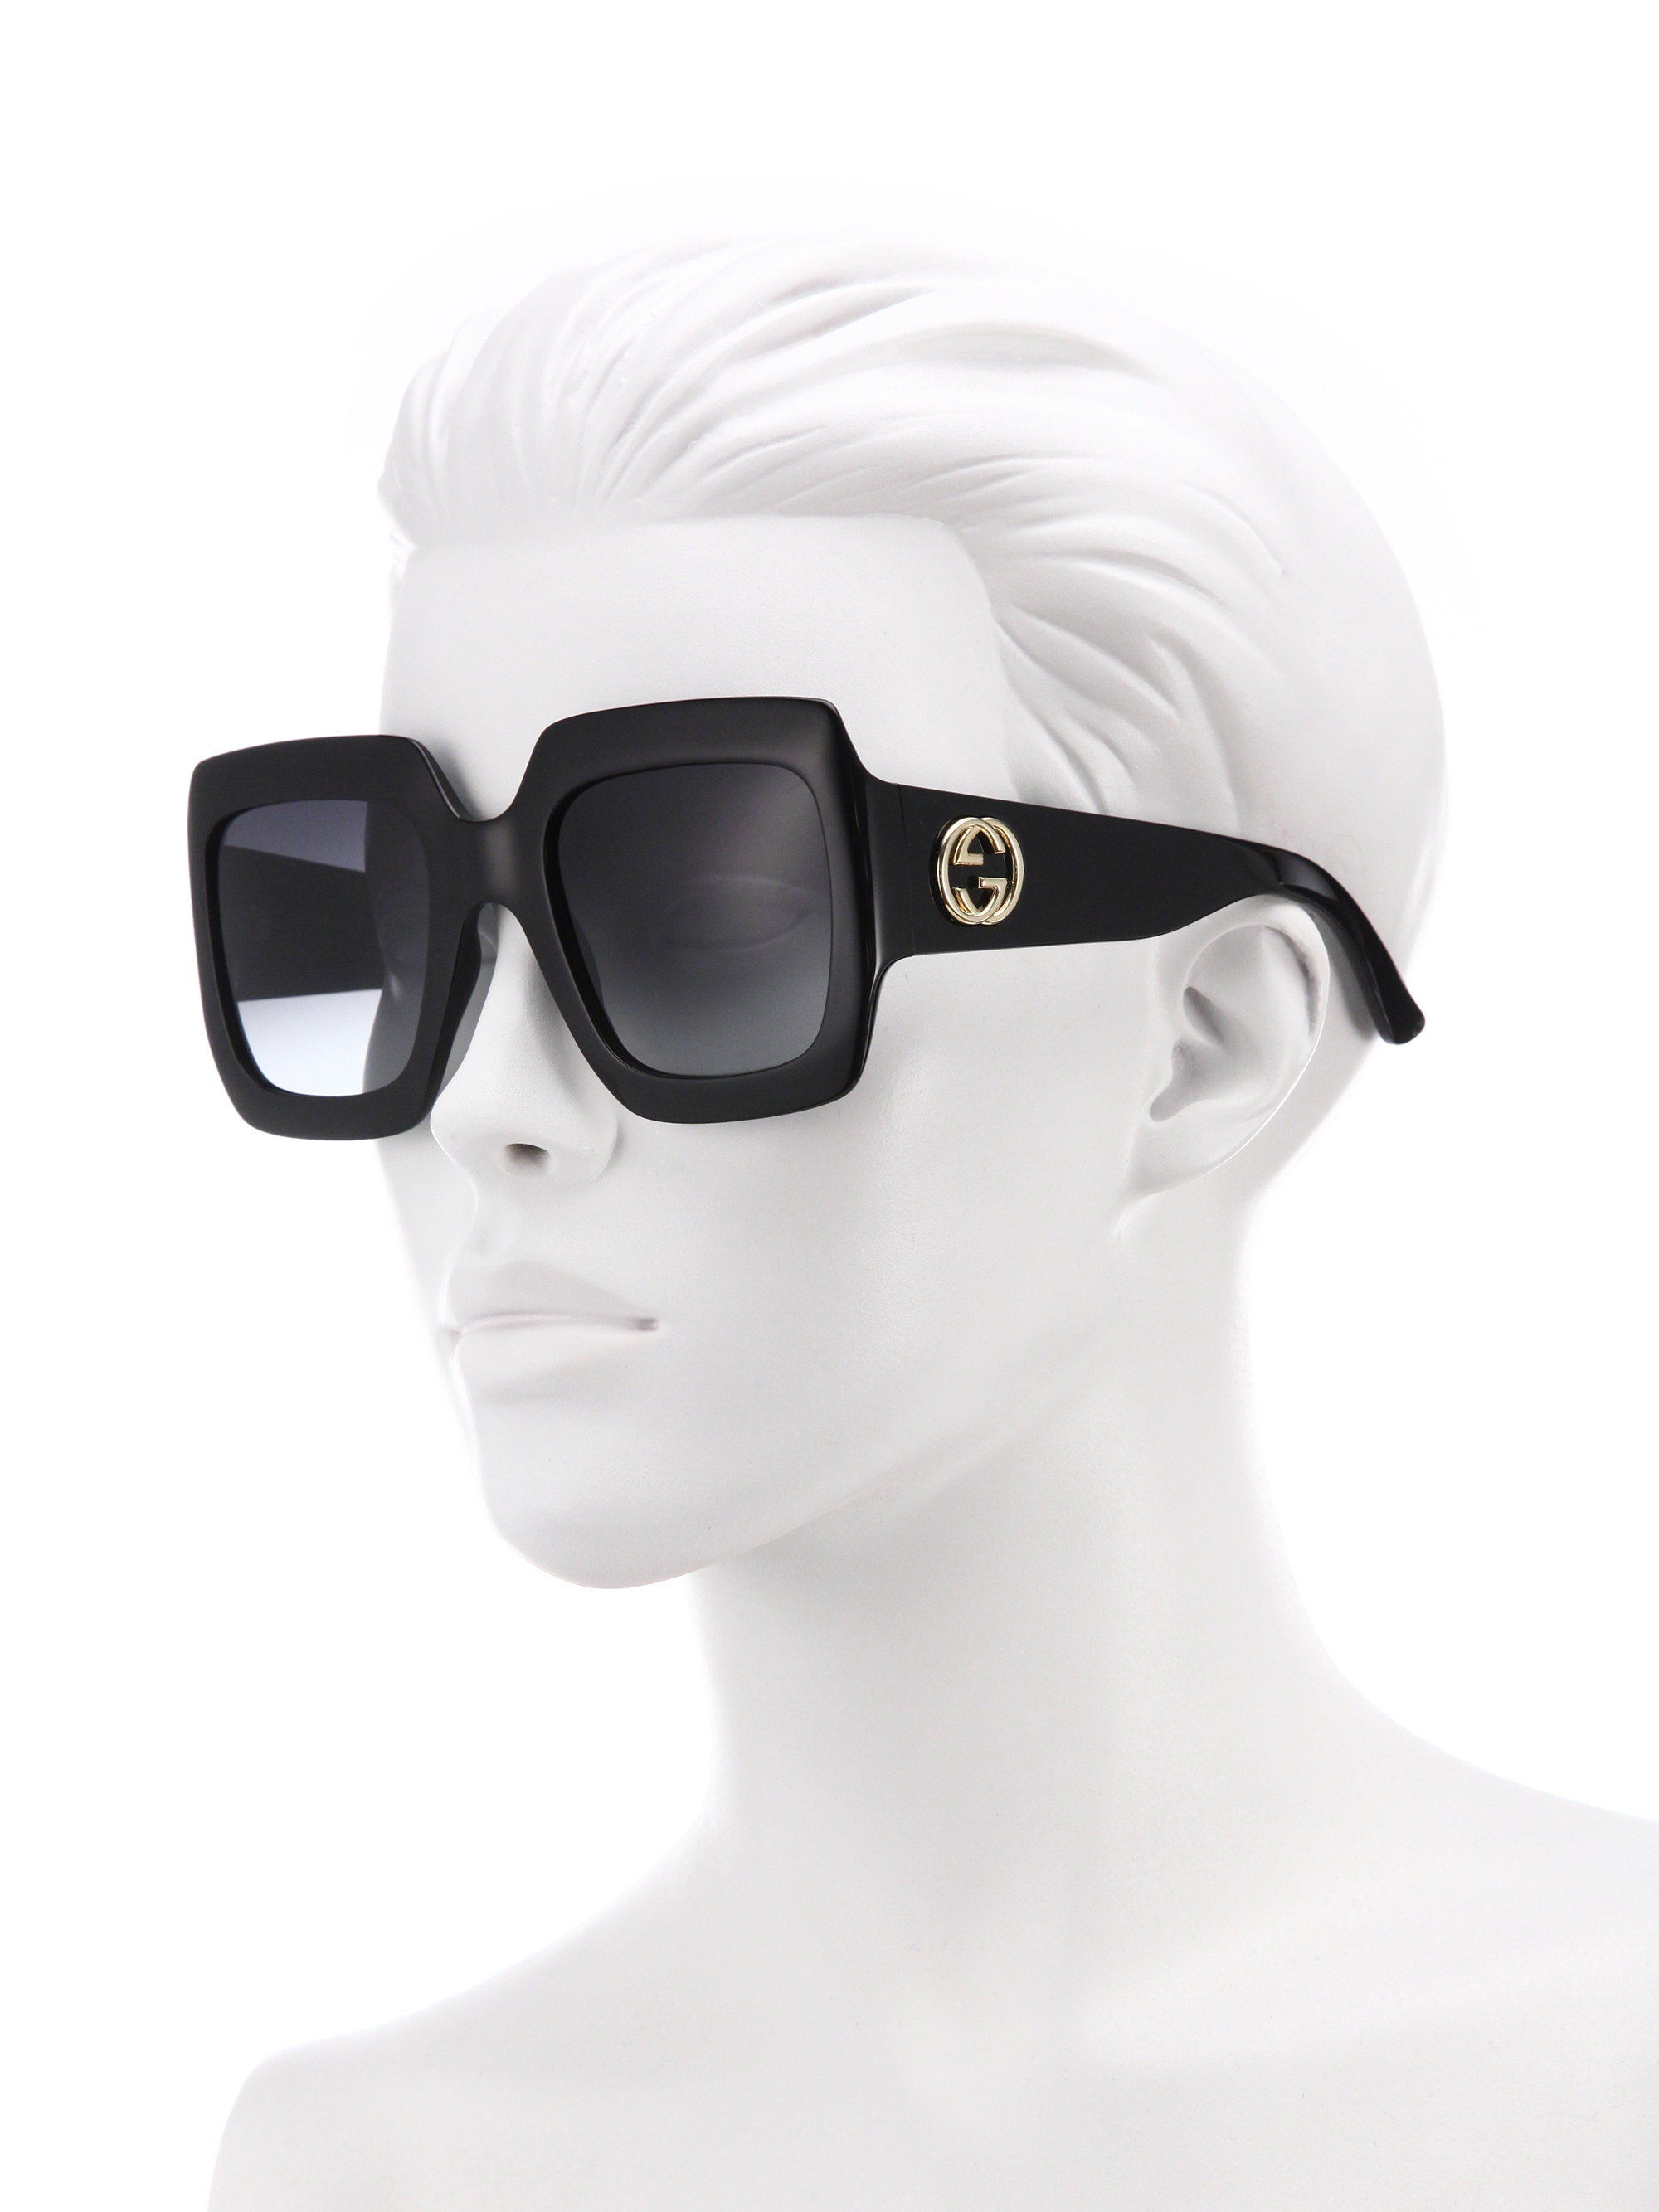 f2a609668f813 Gucci 54mm Oversized Square Sunglasses in Black - Lyst